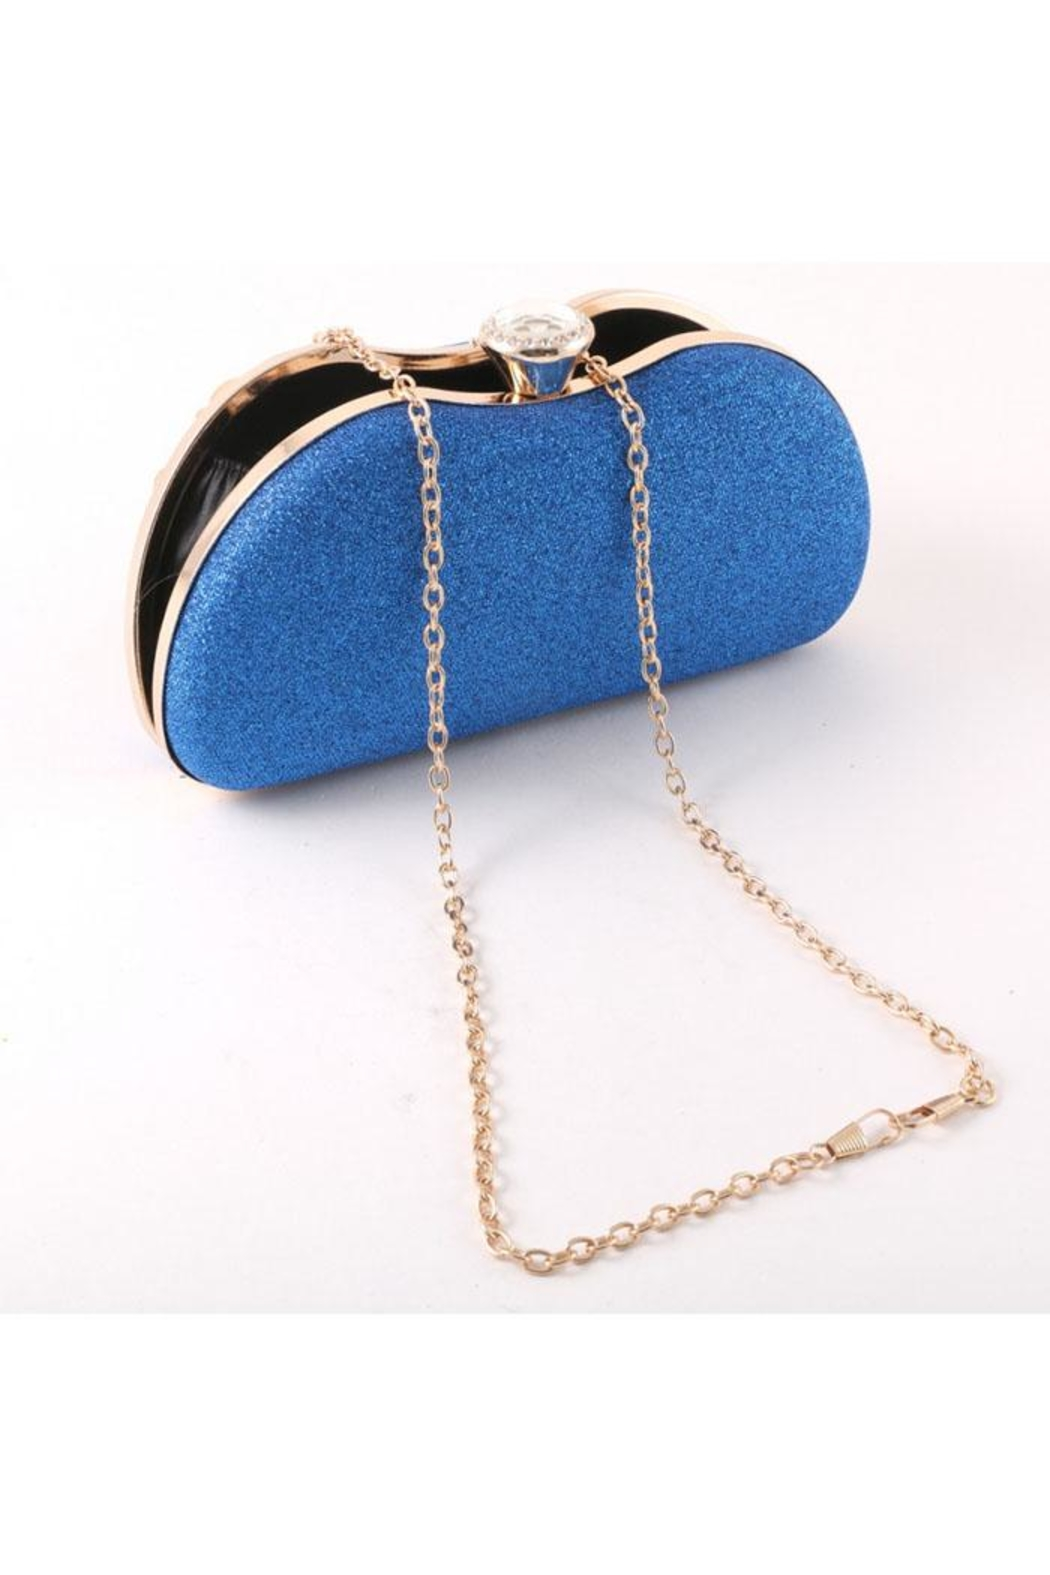 Madison Avenue Accessories Blue Stone Clutch - Front Full Image